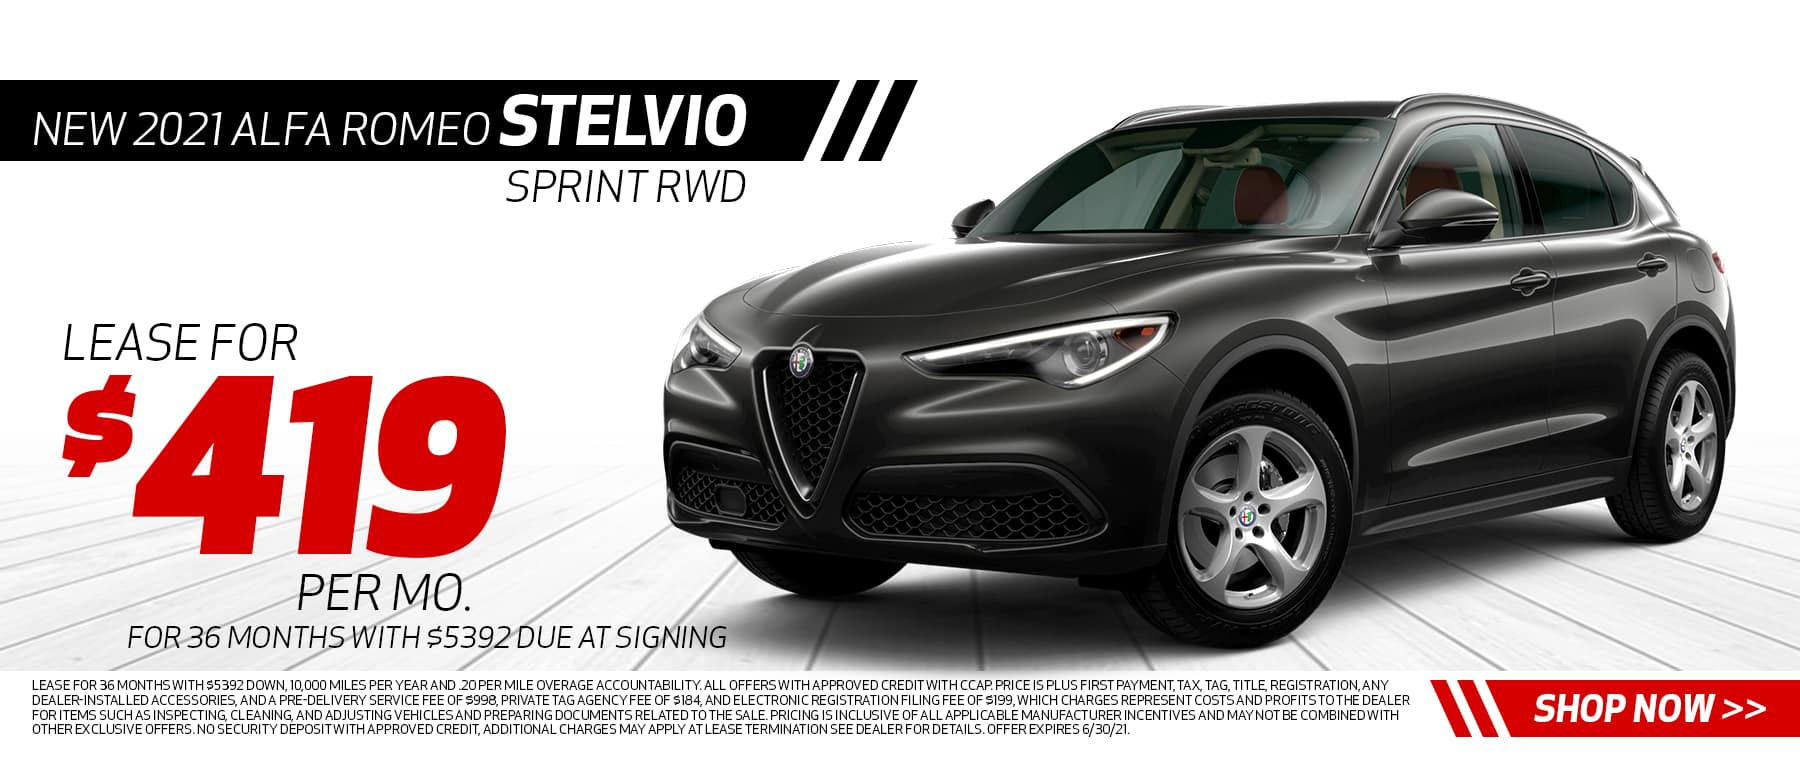 New 2021 Alfa Romeo Stelvio Sprint RWD Lease for $419 per month 36 months, $5392 due at signing Disclaimer: Lease for 36 months with $5392 down, 10,000 miles per year and .20 per mile overage accountability. All offers with approved credit with CCAP. Price is plus first payment, tax, tag, title, registration, any dealer-installed accessories, and a pre-delivery service fee of $998, Private Tag Agency Fee of $184, and Electronic Registration Filing Fee of $199, which charges represent costs and profits to the dealer for items such as inspecting, cleaning, and adjusting vehicles and preparing documents related to the sale. Pricing is inclusive of all applicable manufacturer incentives and may not be combined with other exclusive offers. No security deposit with approved credit, additional charges may apply at lease termination See dealer for details. Offer expires 6/30/21.